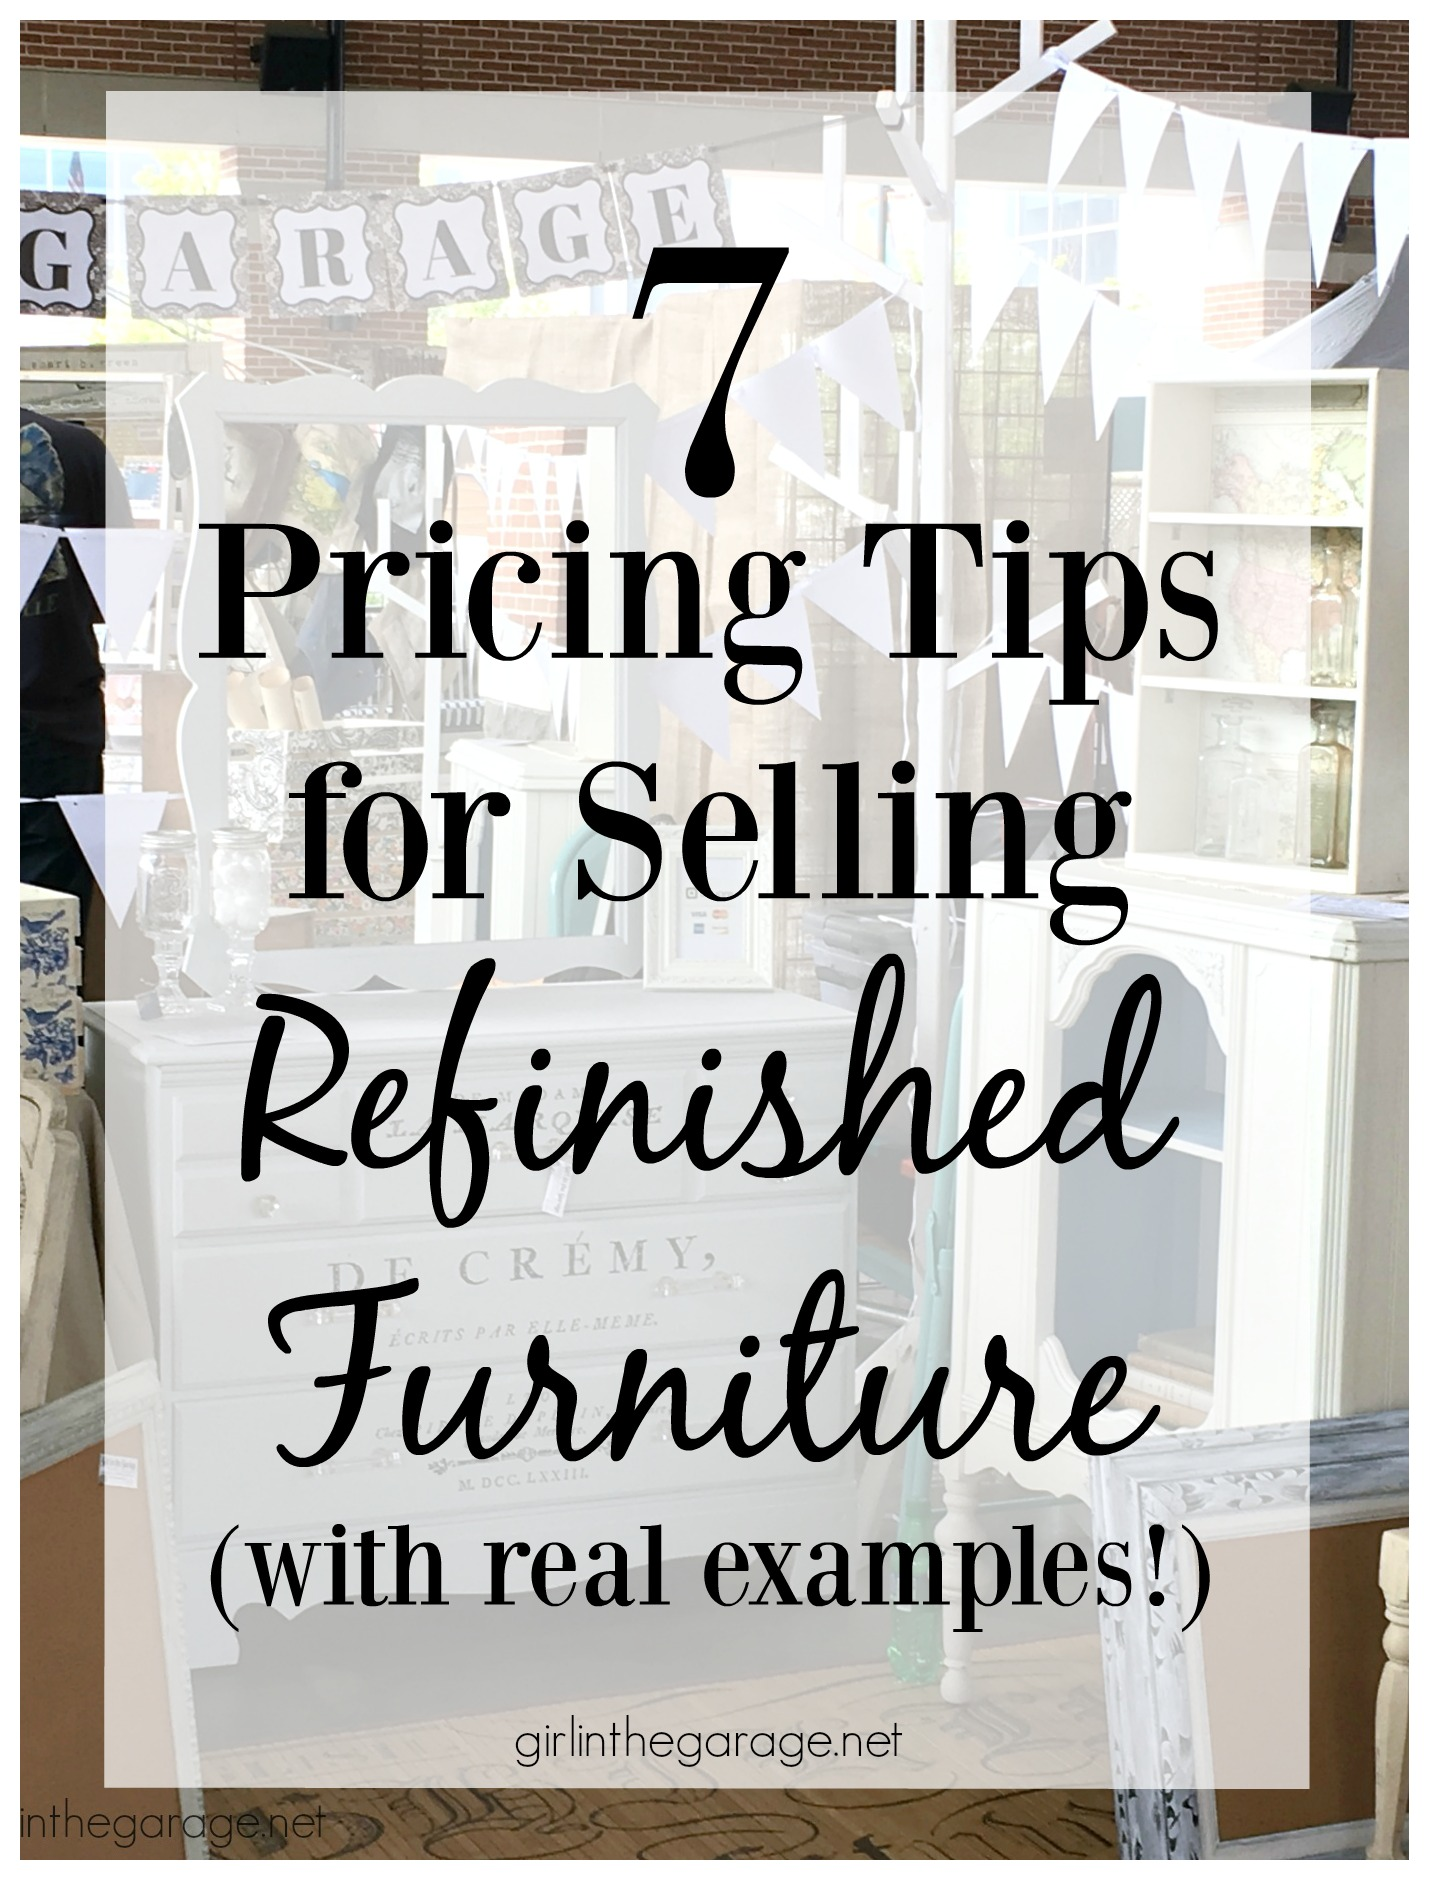 Pricing Tips for Selling Refinished Furniture - Girl in the Garage